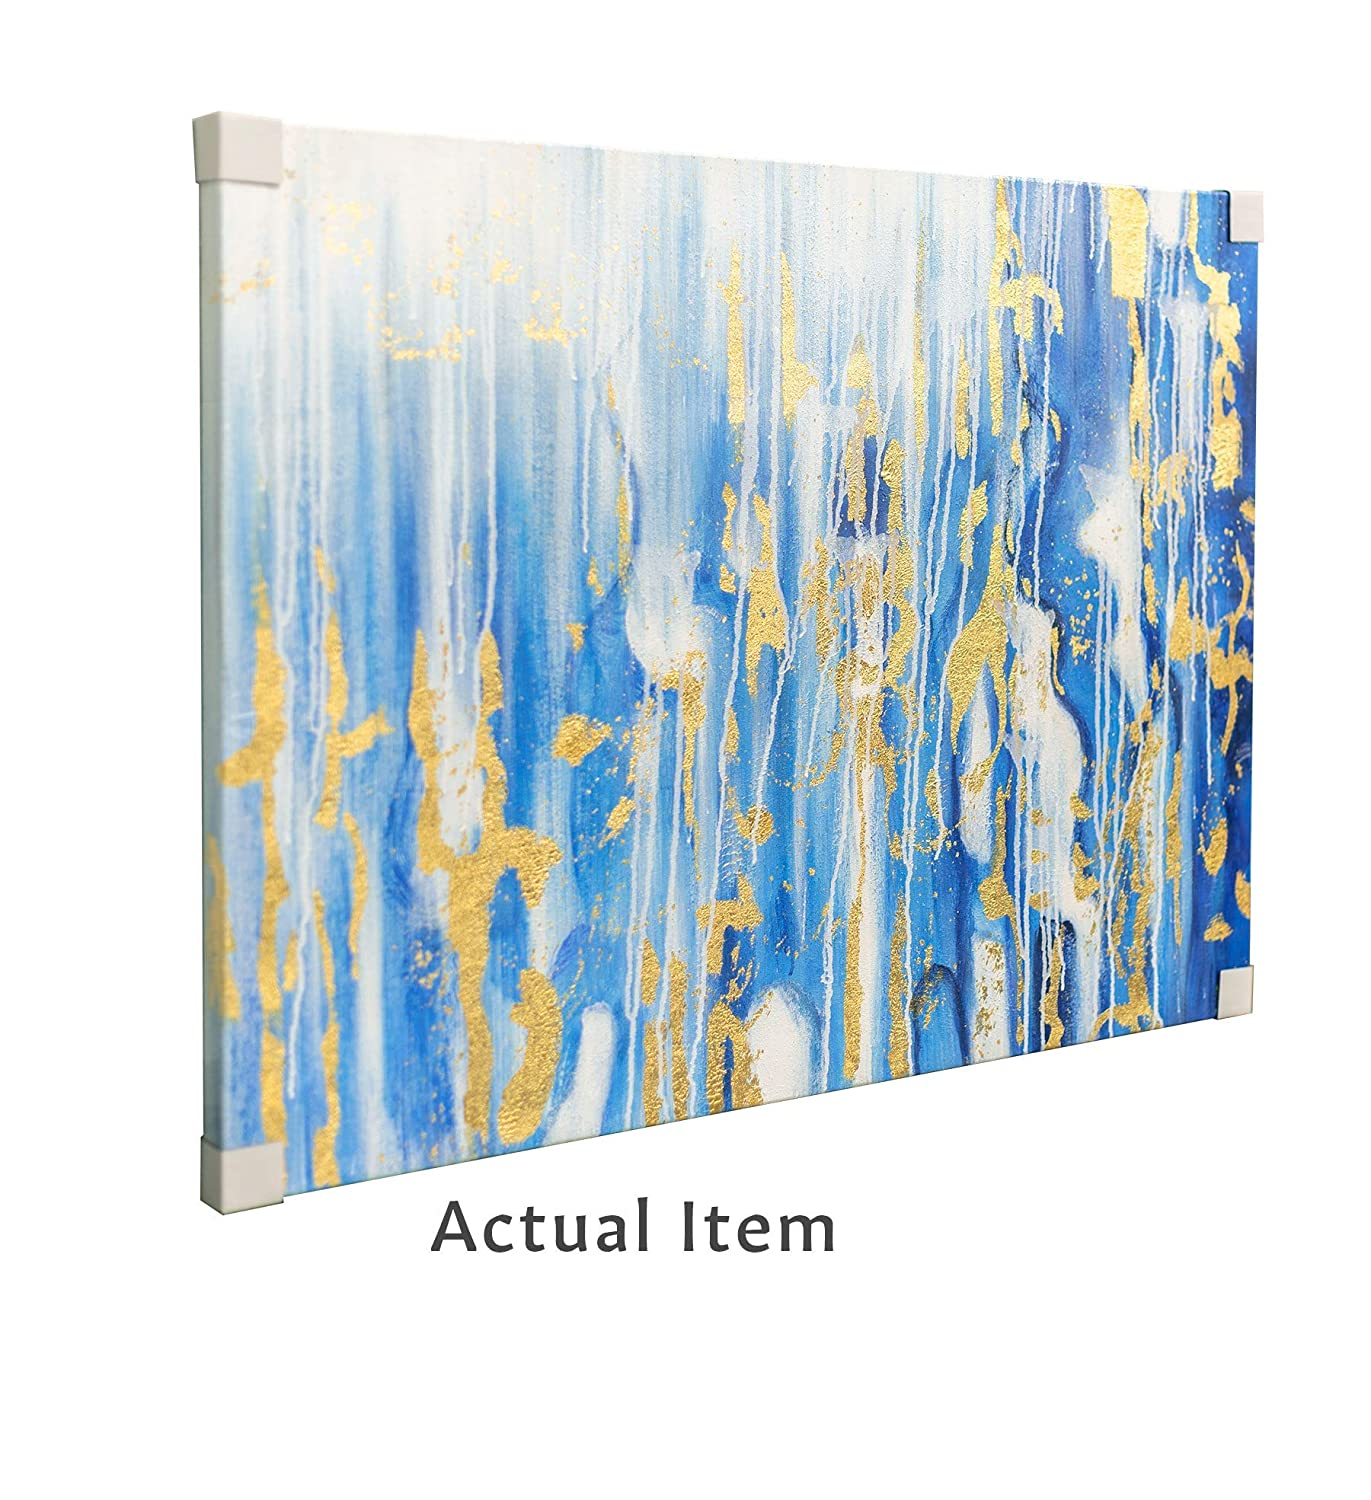 Ready to Hang Unframed 30x40 OAT ART STUDIO Blue Gold Foil Abstract Modern 100/% Hand Painted Oil Painting//Wall Art